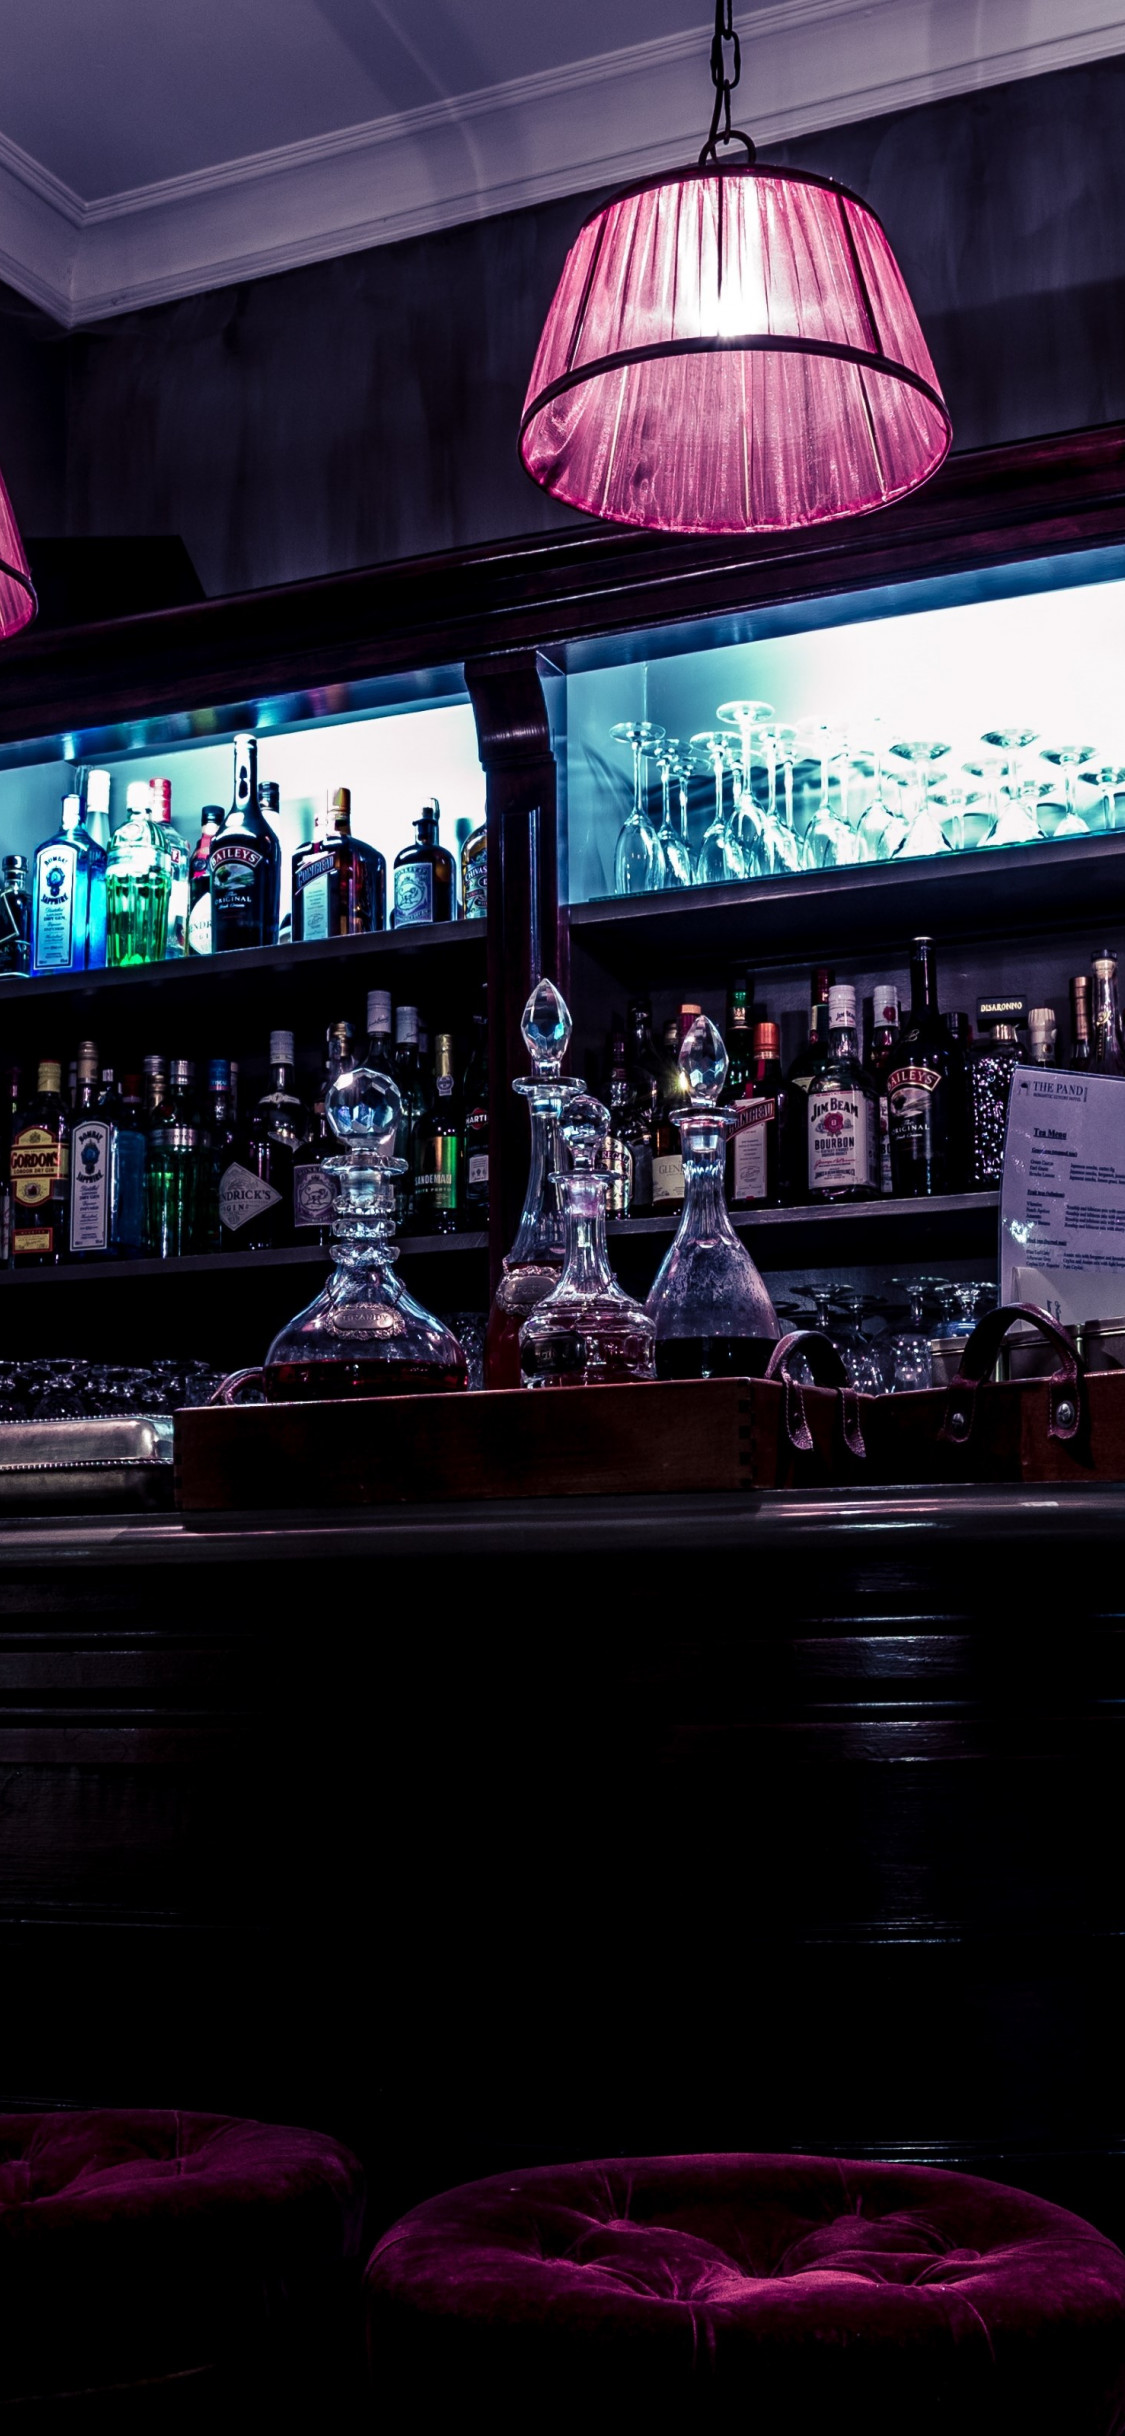 Interior bar design wallpaper 1125x2436